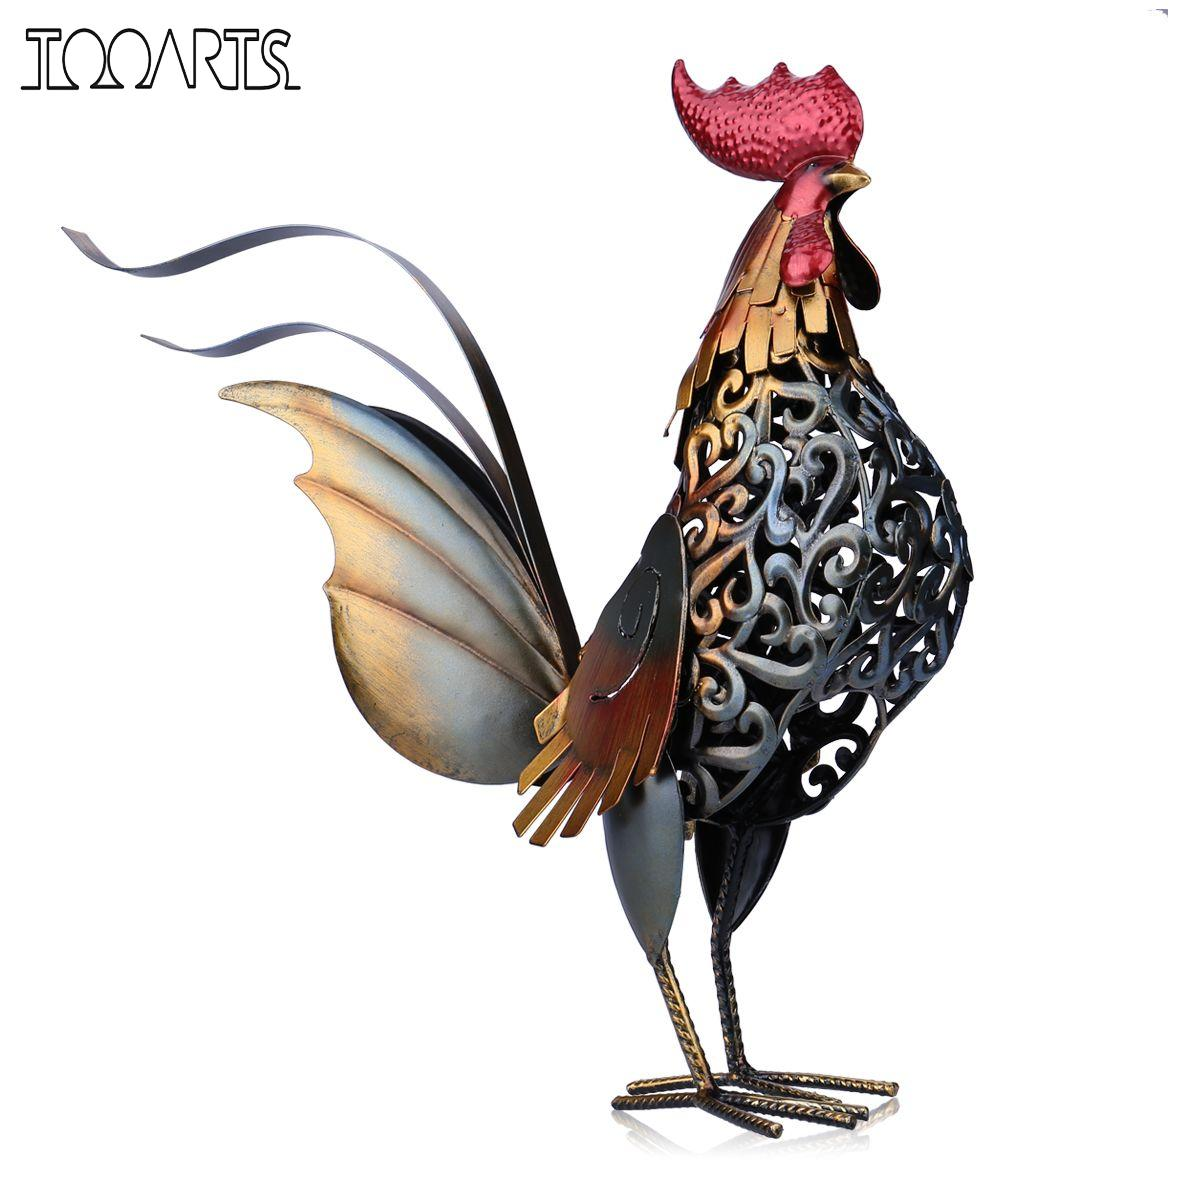 Tooarts Metal Figurine Iron Rooster Home Decor Articles